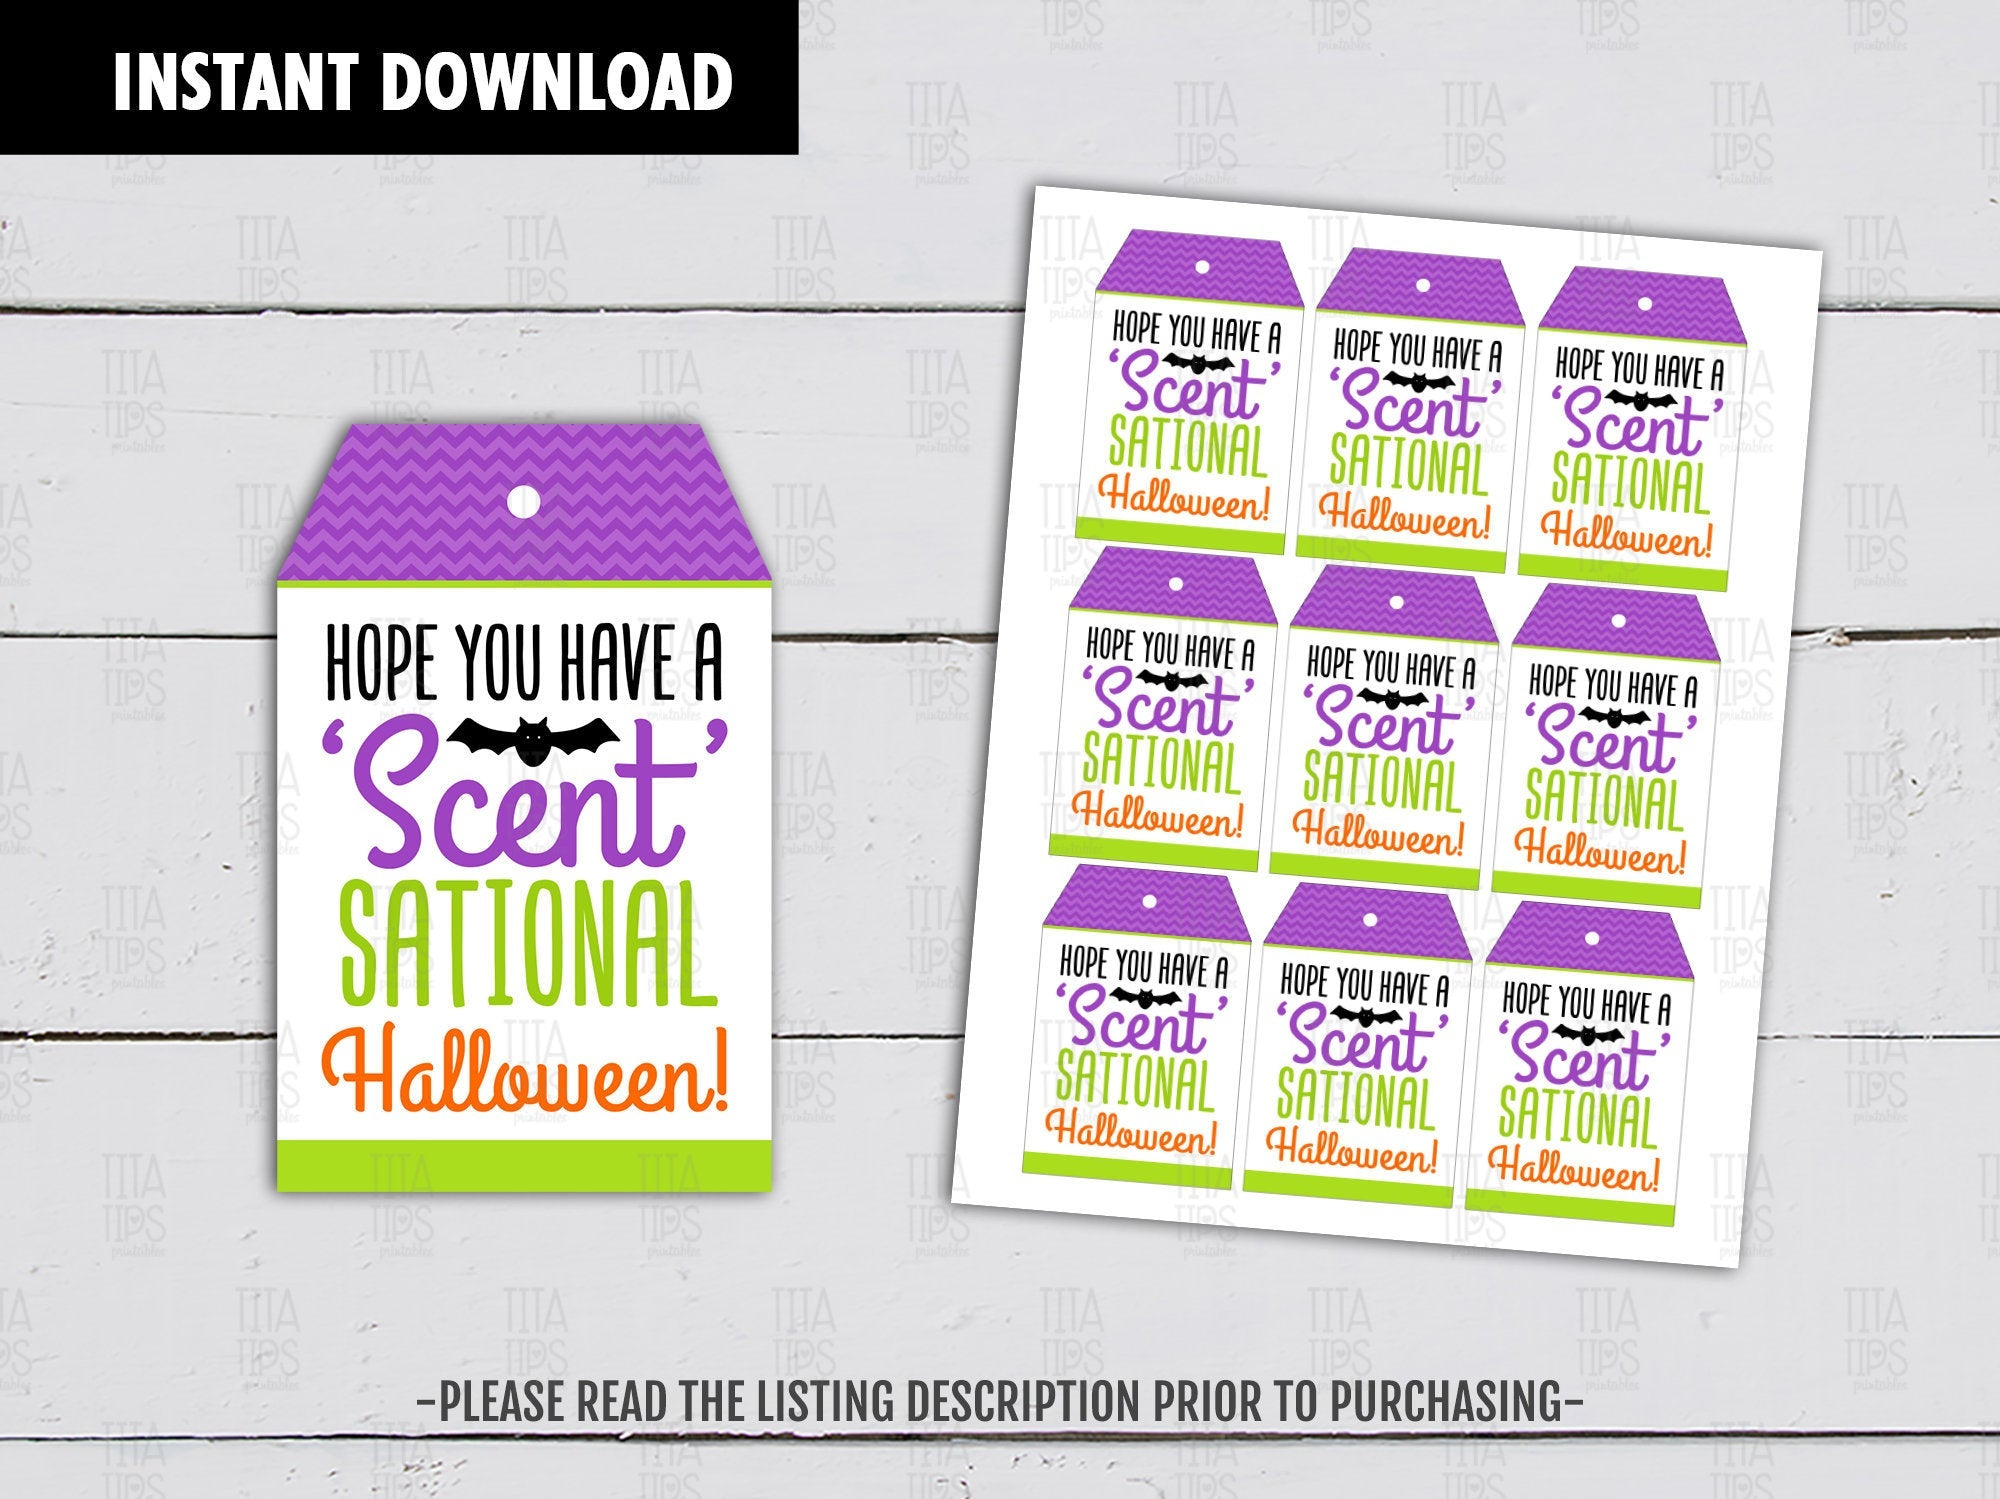 Hope you have a Sensational Halloween, Candle Printable Card, Halloween Favor Tags, Instant Download - TitaTipsPrintables